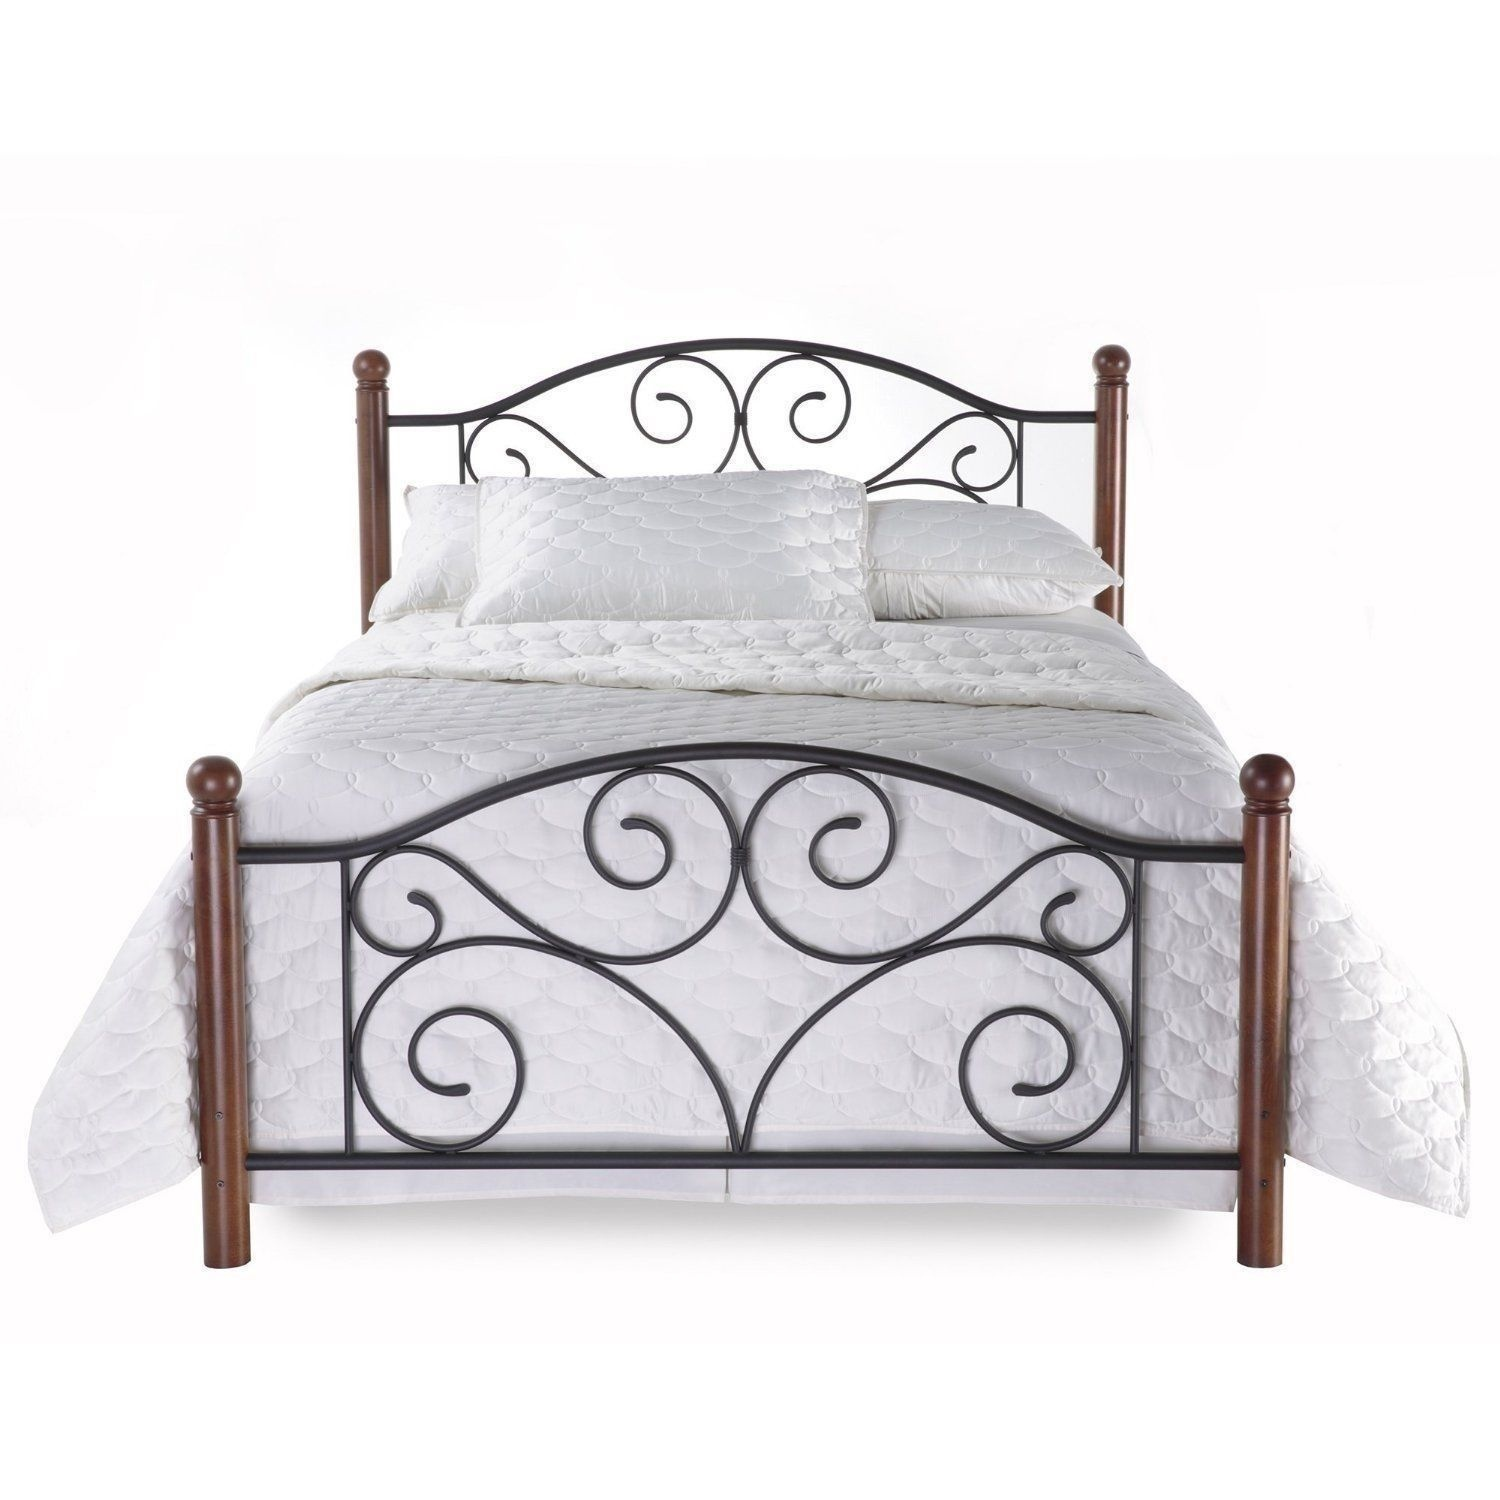 full bed frame with headboard and footboard pictures pulaski furniture all in charcoal queen upholstered ds fascinating white frames on ikea 2018 new king size metal wood mattress bed frame 10831